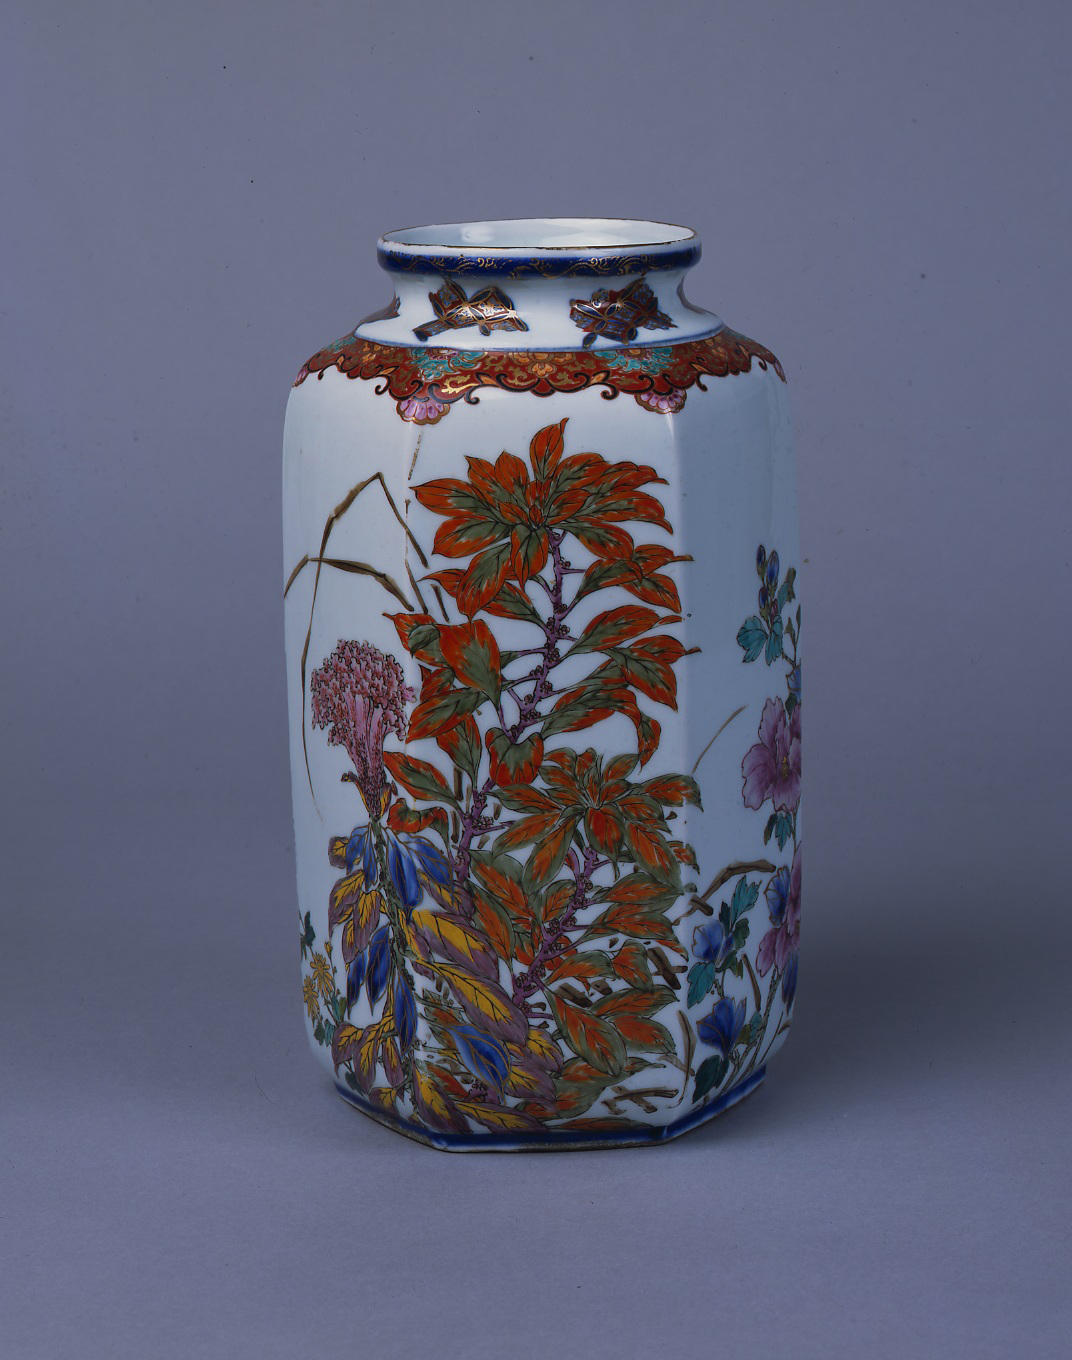 'Six-Faceted Flower Vase With Autumn Grasses in Overglaze Polychrome Enamels' by Eiseisha Company (Meiji Era) | THEMUSEUM OF CERAMIC ART, HYOGO